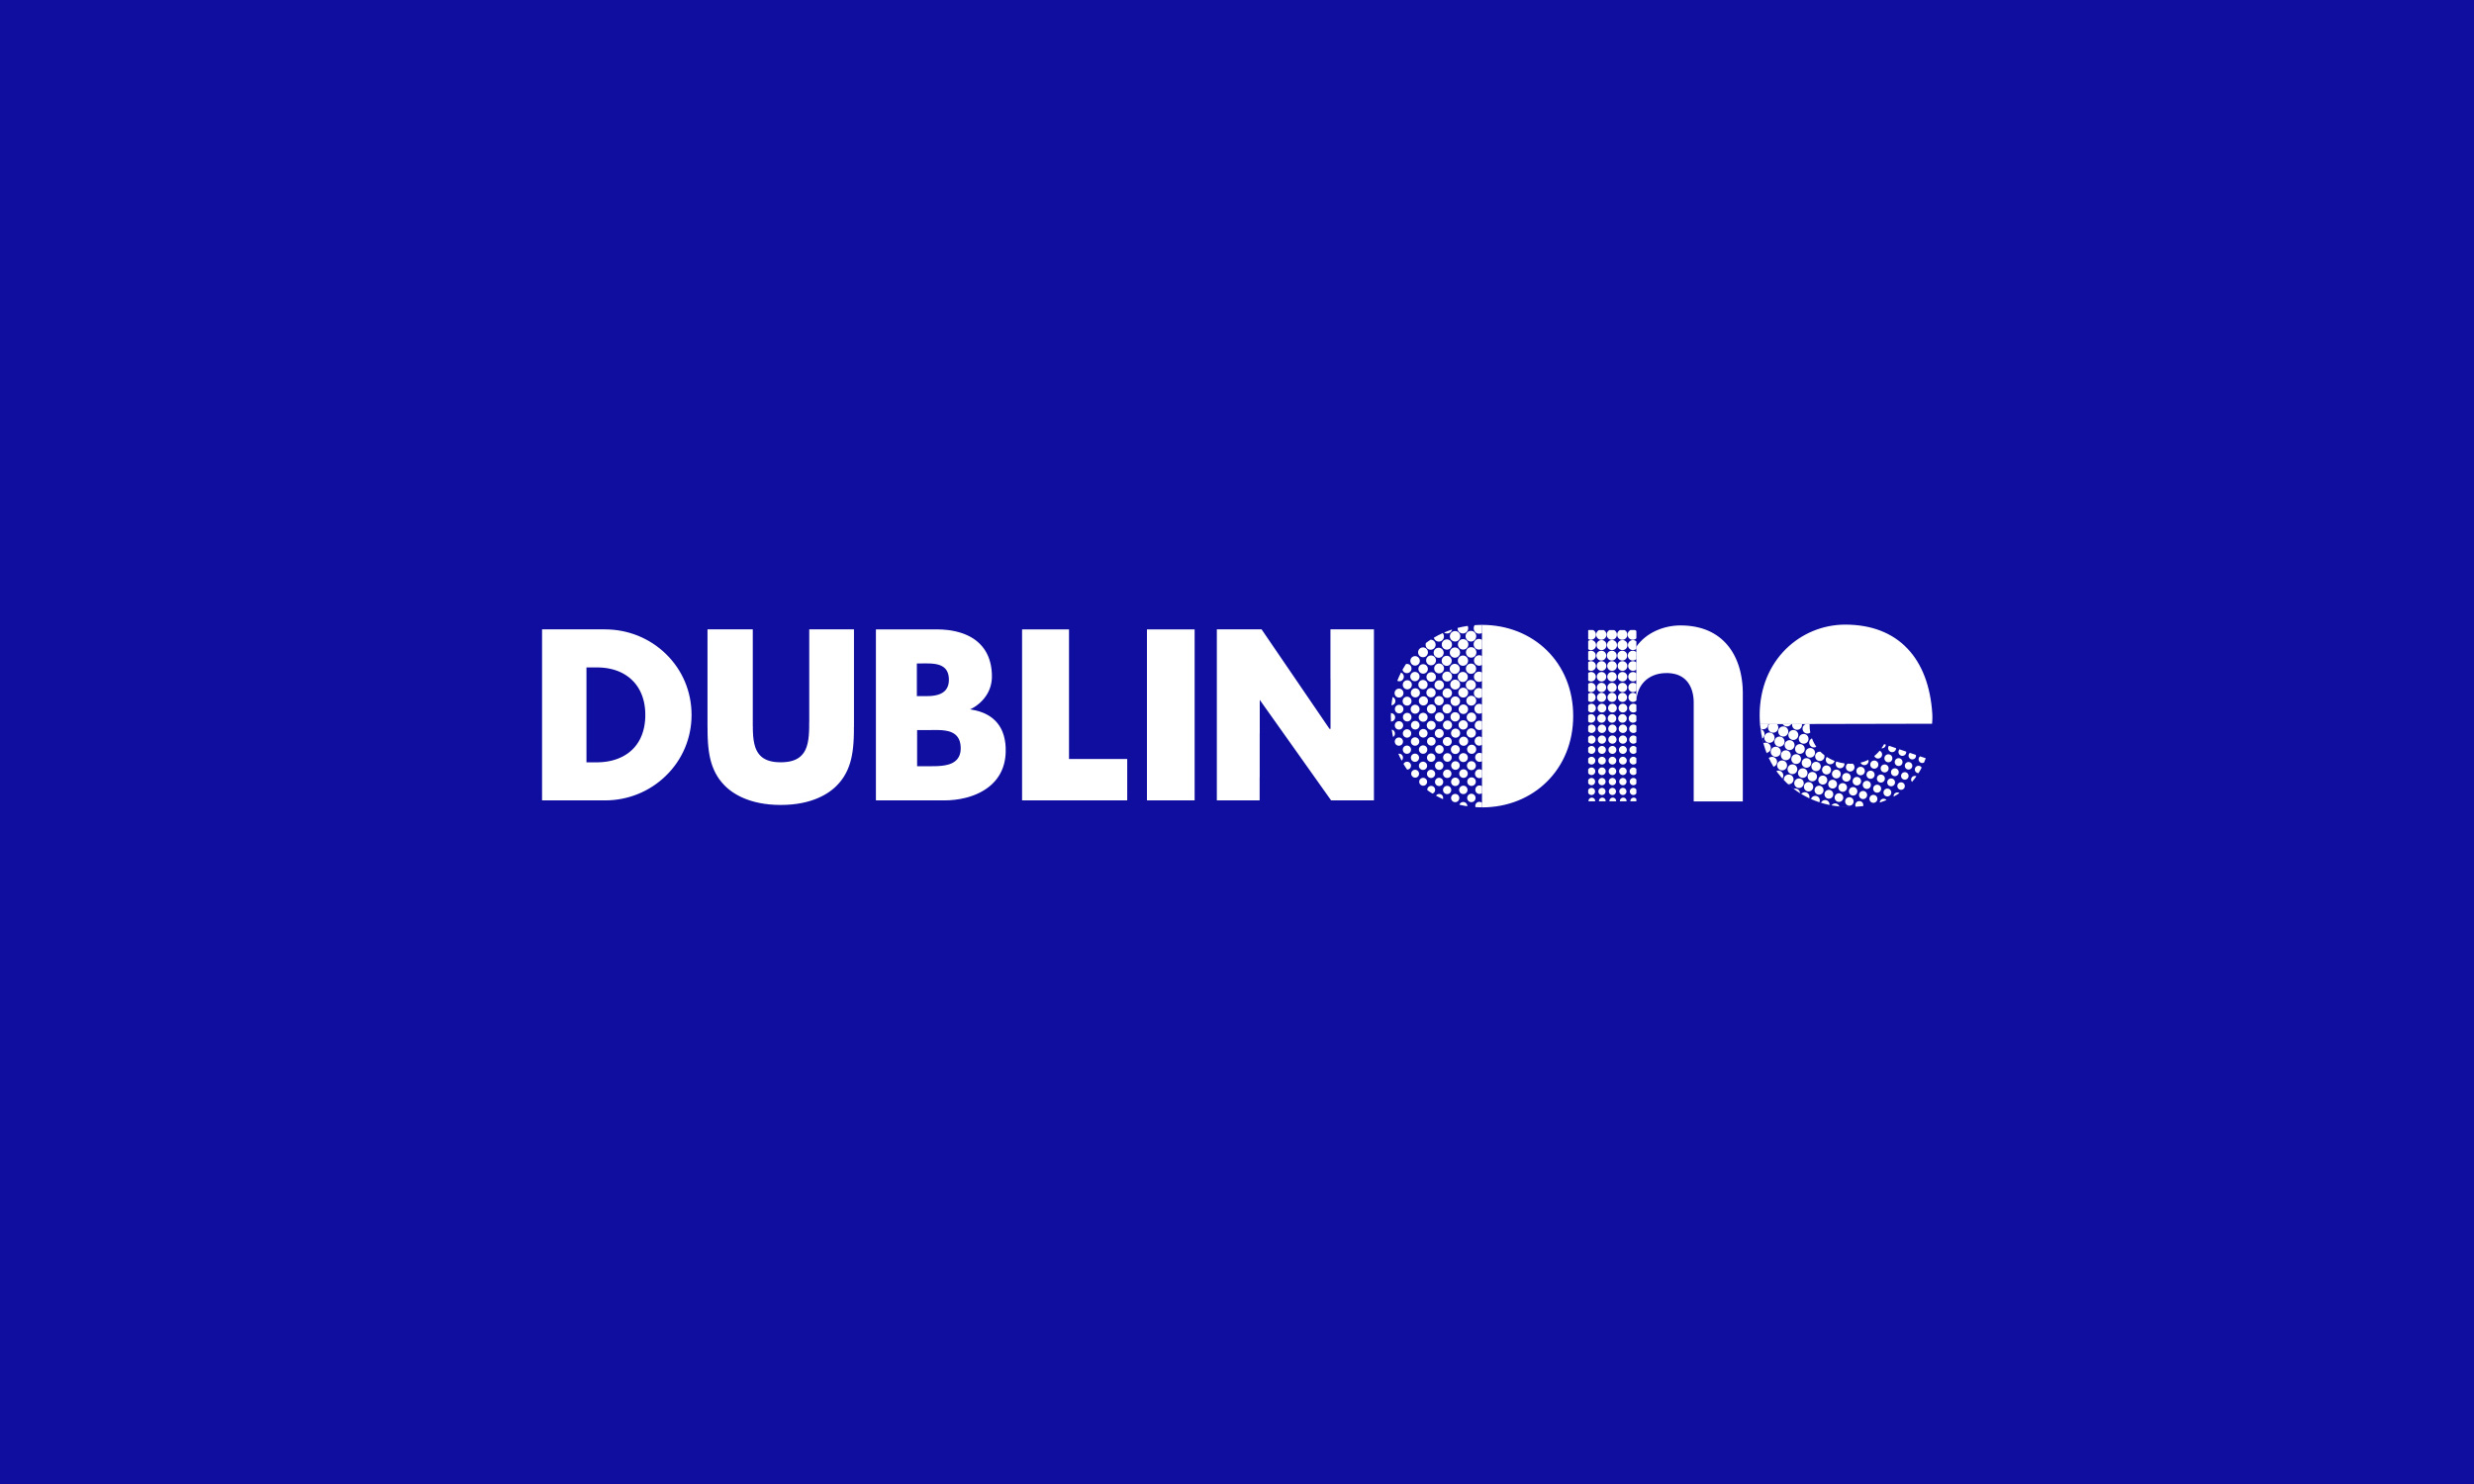 Cover image: Dublin One Brand Identity